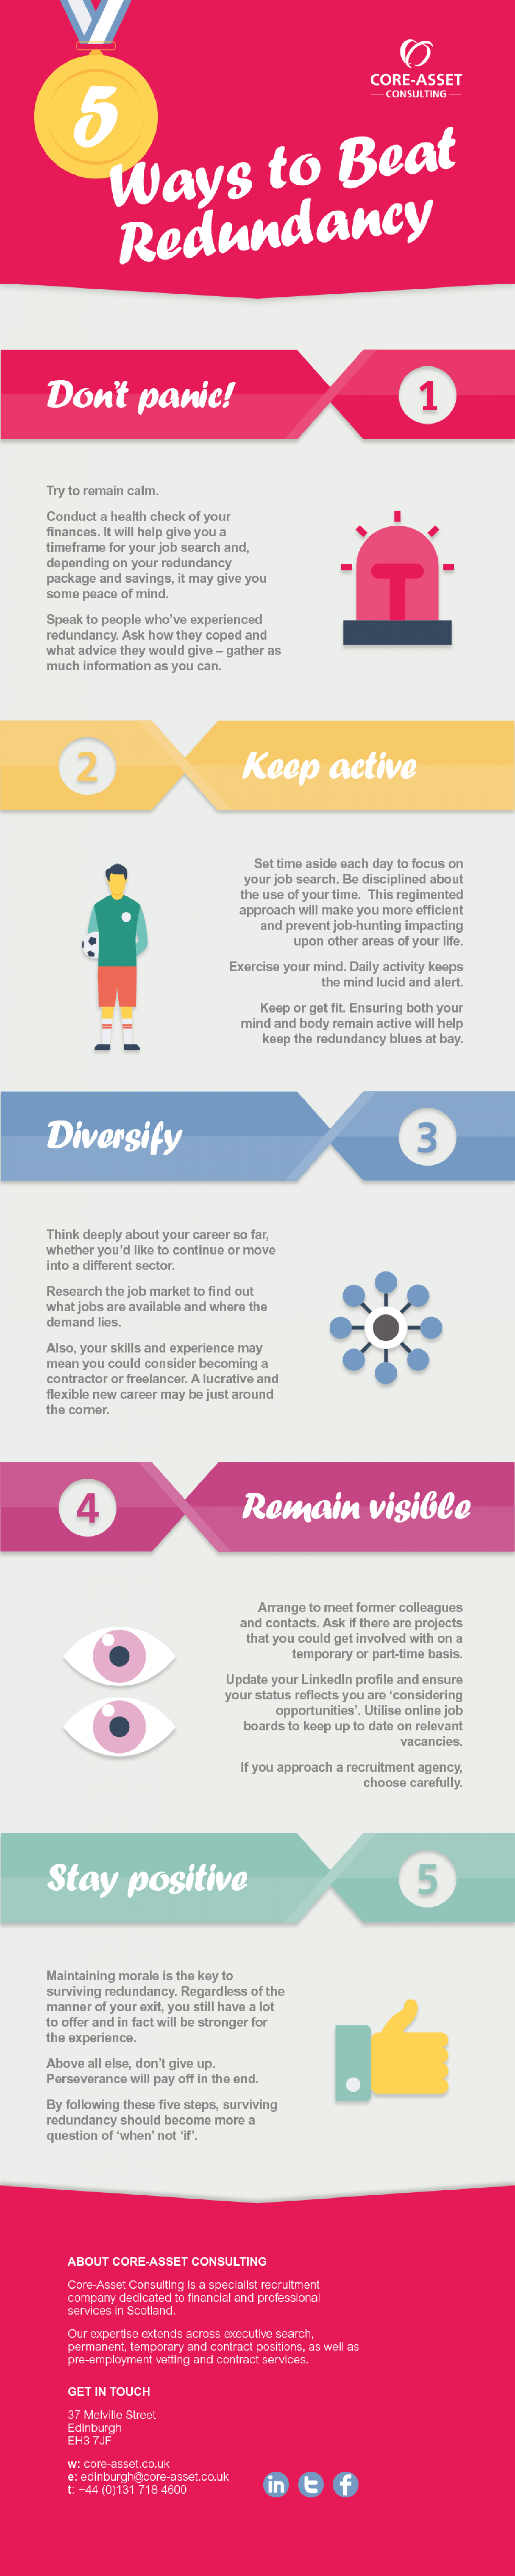 Surviving Redundancy: 5 Ways to Come Out on Top Infographic